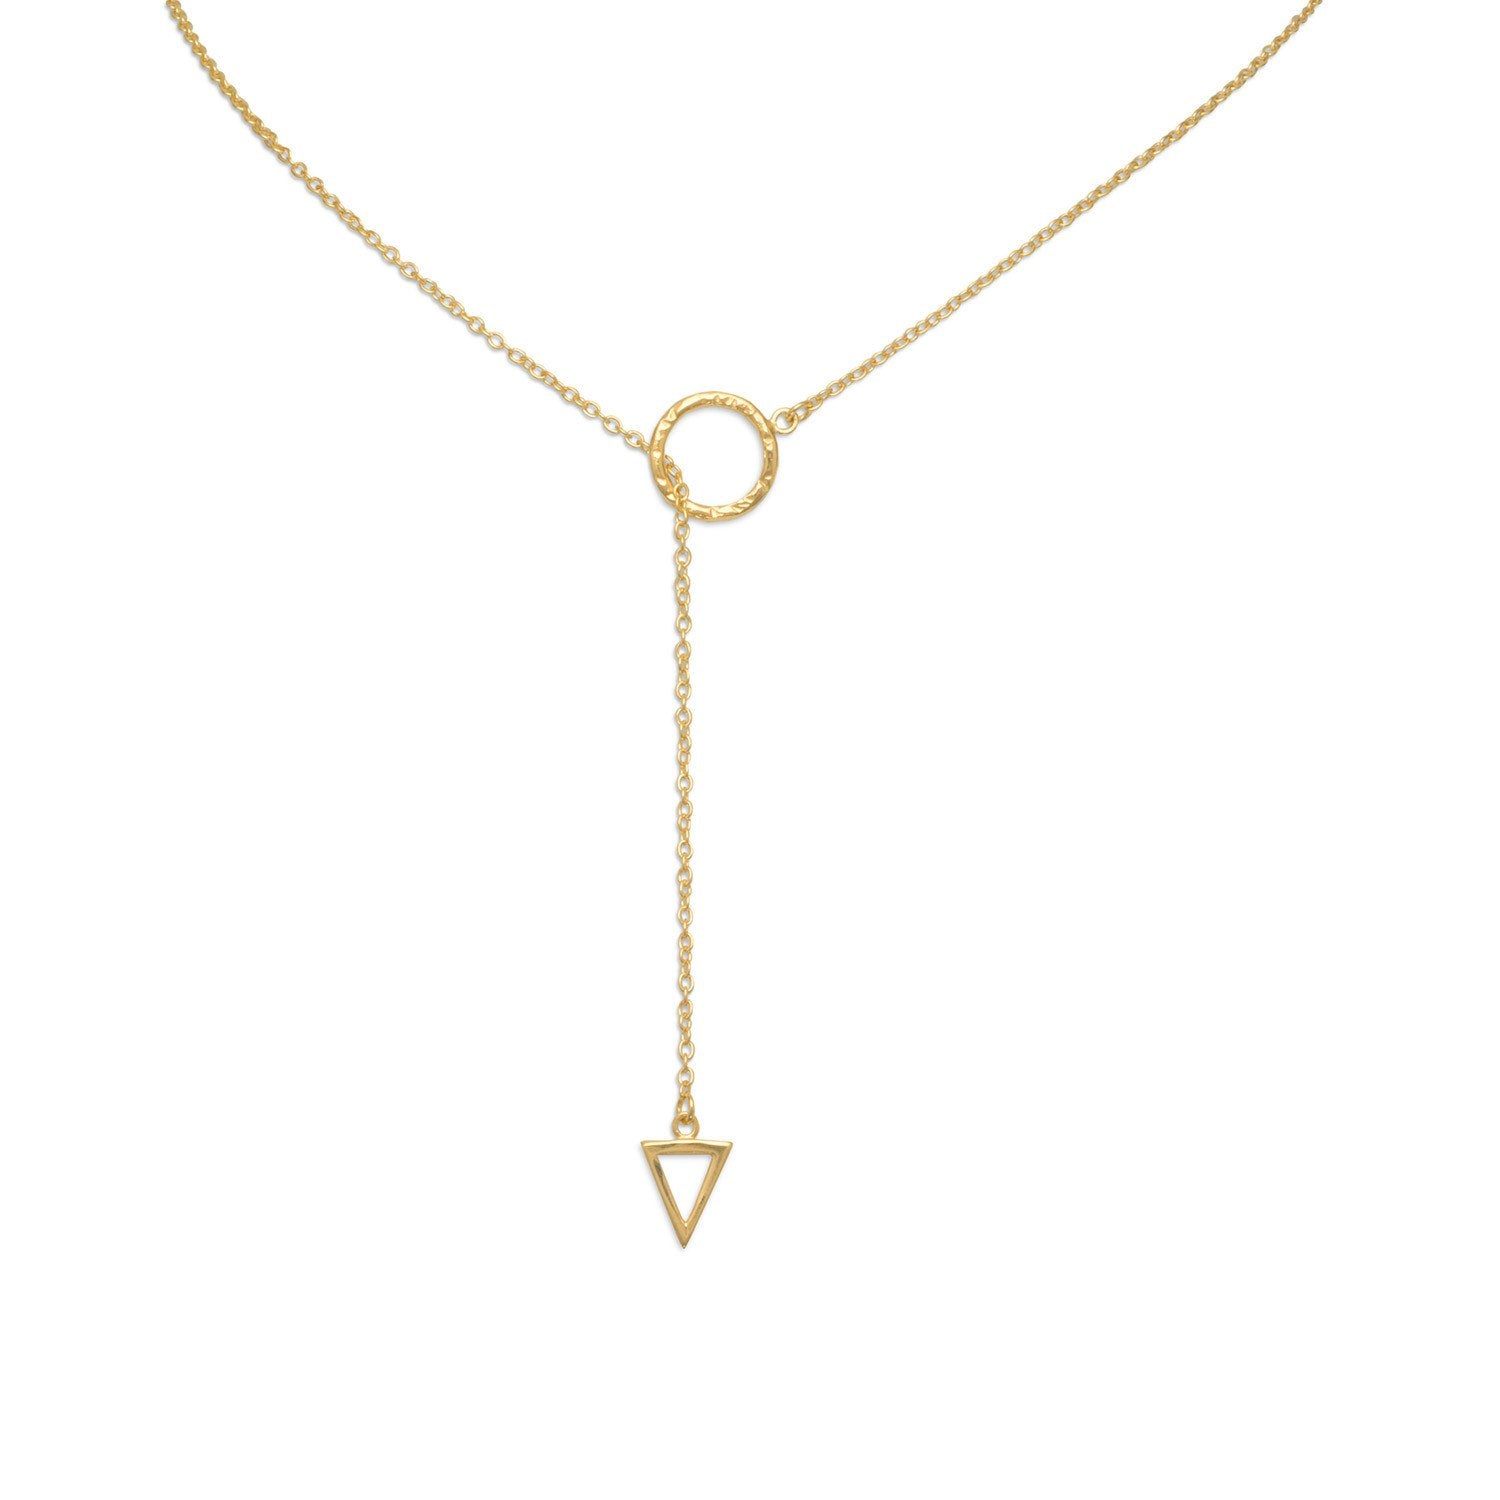 18k Gold Triangle & Circle Ring Lariat Necklace